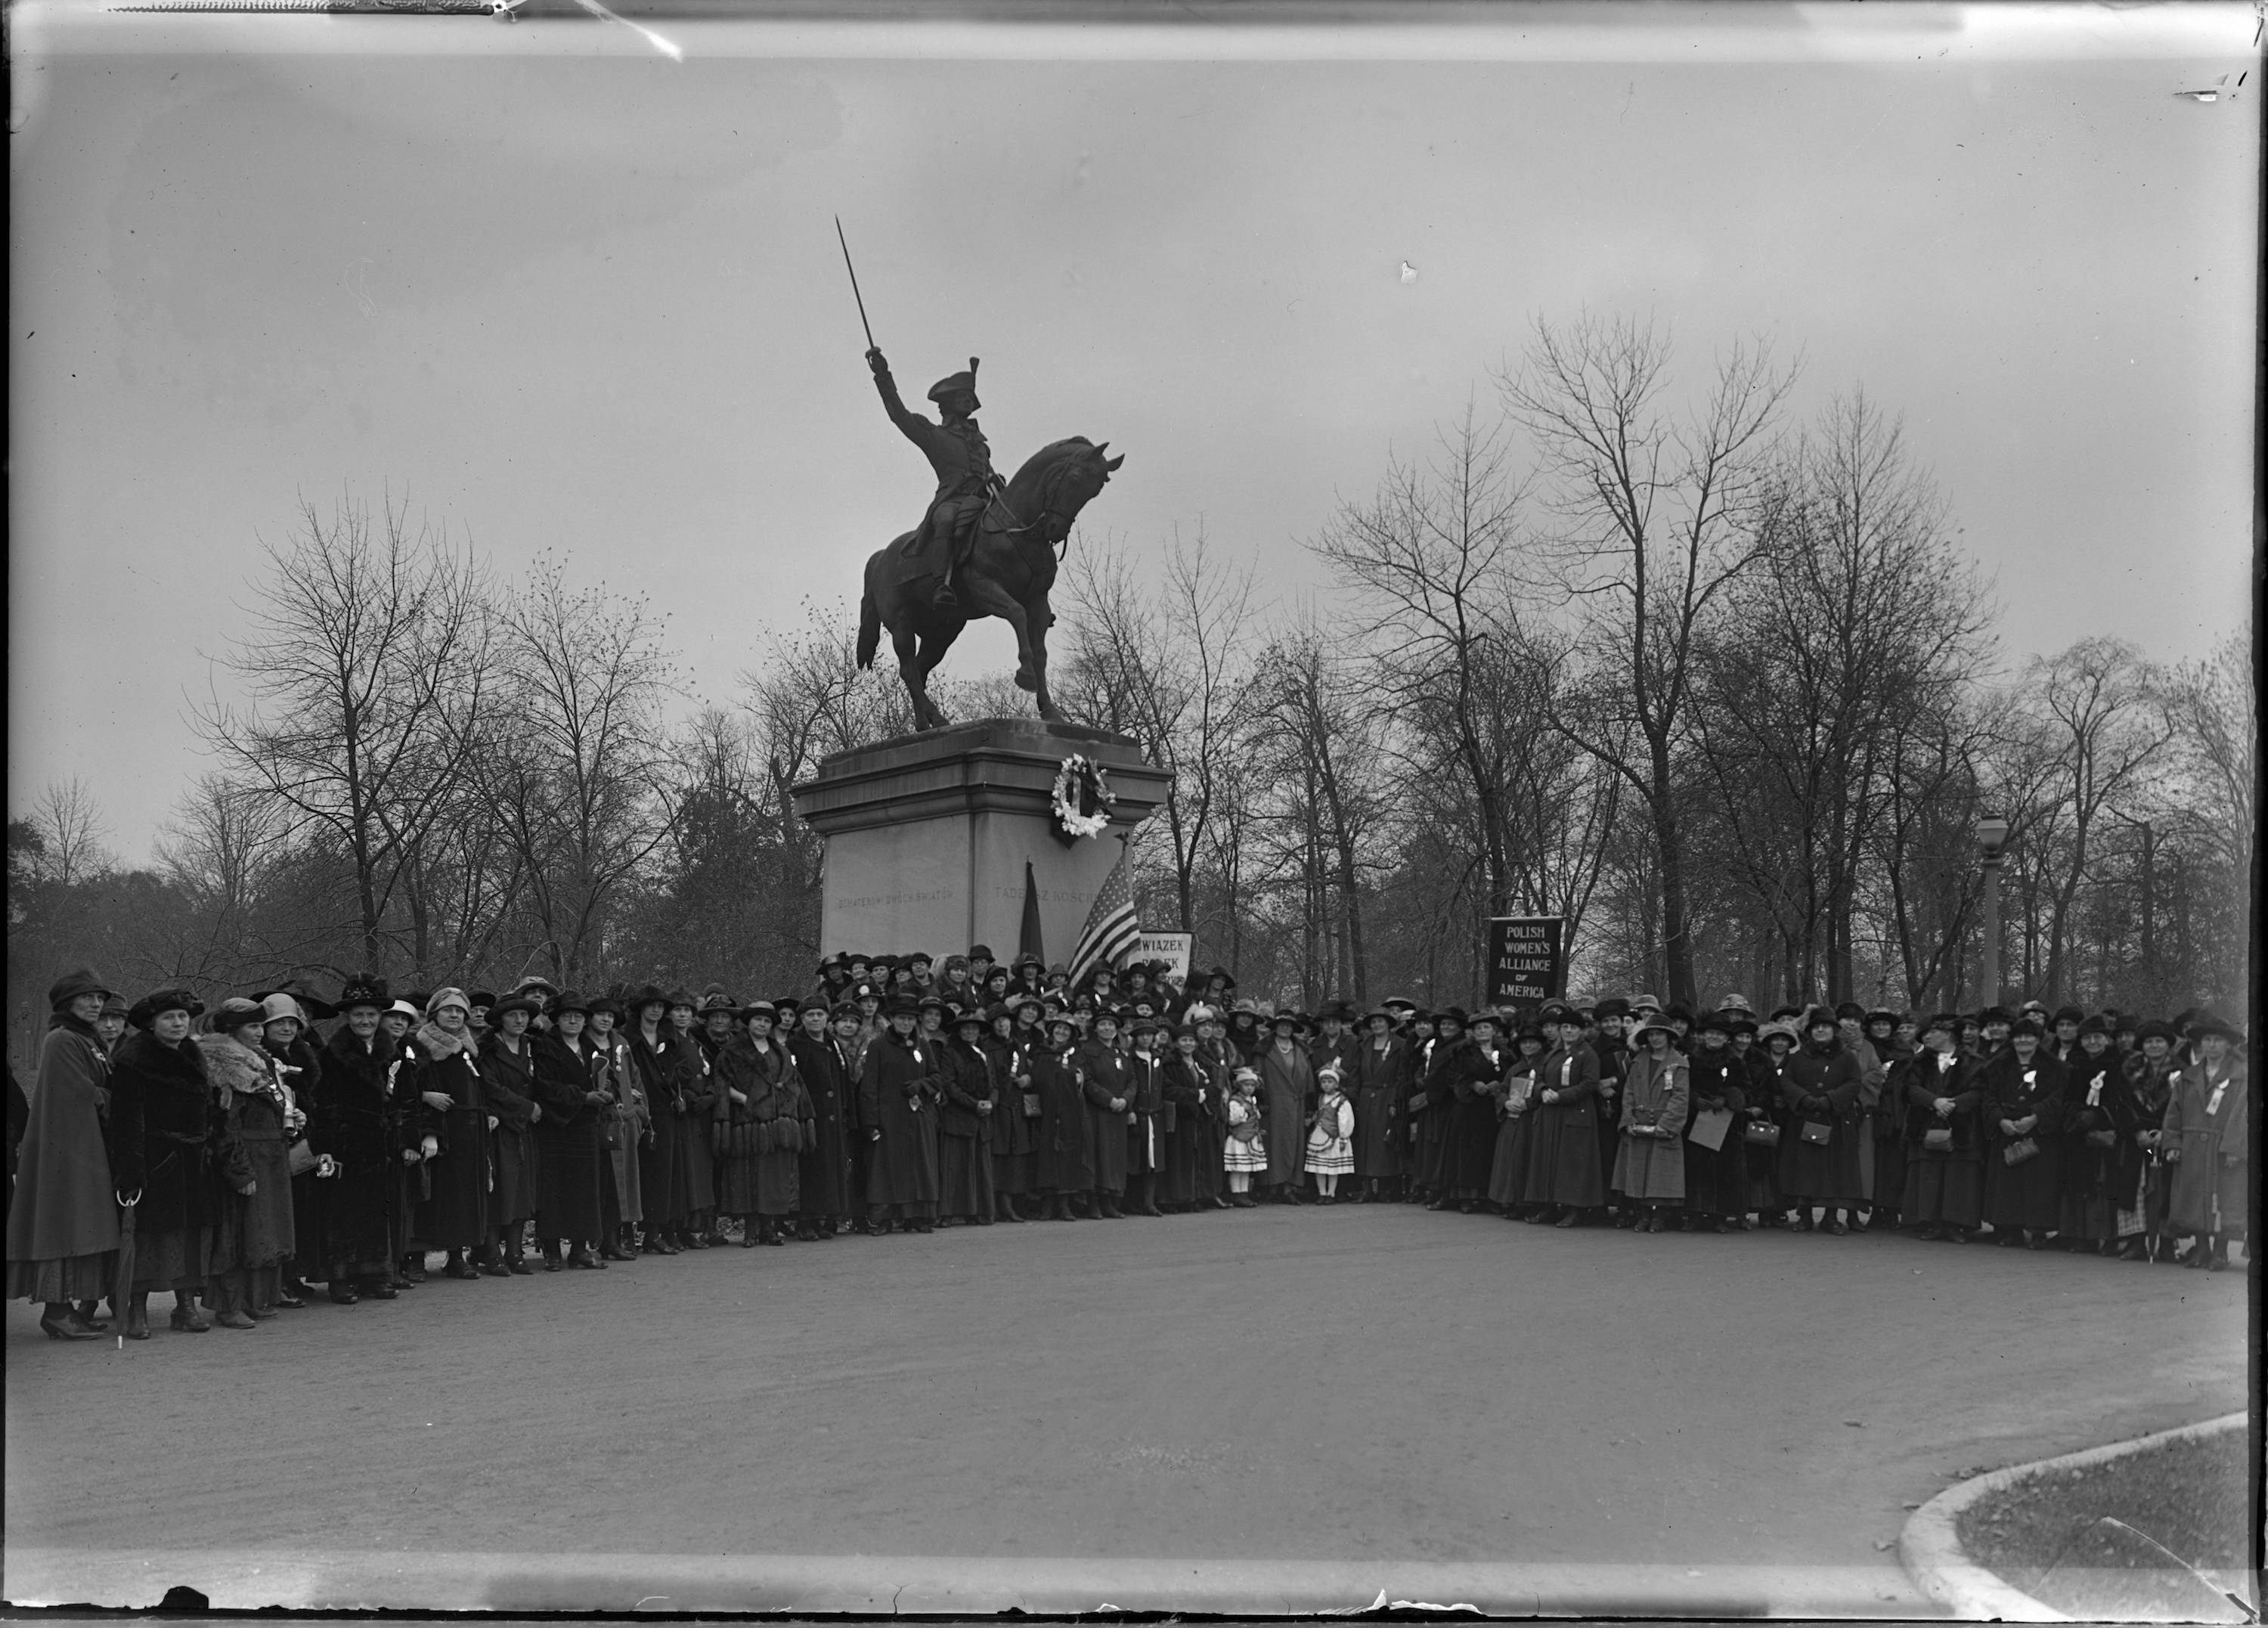 <table class=&quot;lightbox&quot;><tr><td colspan=2 class=&quot;lightbox-title&quot;>Polish Women's Alliance of America</td></tr><tr><td colspan=2 class=&quot;lightbox-caption&quot;>Women representing the Polish Women's Alliance of America stand in front of Milwaukee's Kosciuszko Monument in Kosciuszko Park in 1923.</td></tr><tr><td colspan=2 class=&quot;lightbox-spacer&quot;></td></tr><tr class=&quot;lightbox-detail&quot;><td class=&quot;cell-title&quot;>Source: </td><td class=&quot;cell-value&quot;>From the Roman B. Kwaniewski Photographs Collection, Archives. University of Wisconsin-Milwaukee Libraries. <br /><a href=&quot;https://collections.lib.uwm.edu/digital/collection/mke-polonia/id/32204/rec/2&quot; target=&quot;_blank&quot;>University of Wisconsin-Milwaukee Libraries</a></td></tr><tr class=&quot;filler-row&quot;><td colspan=2>&nbsp;</td></tr></table>